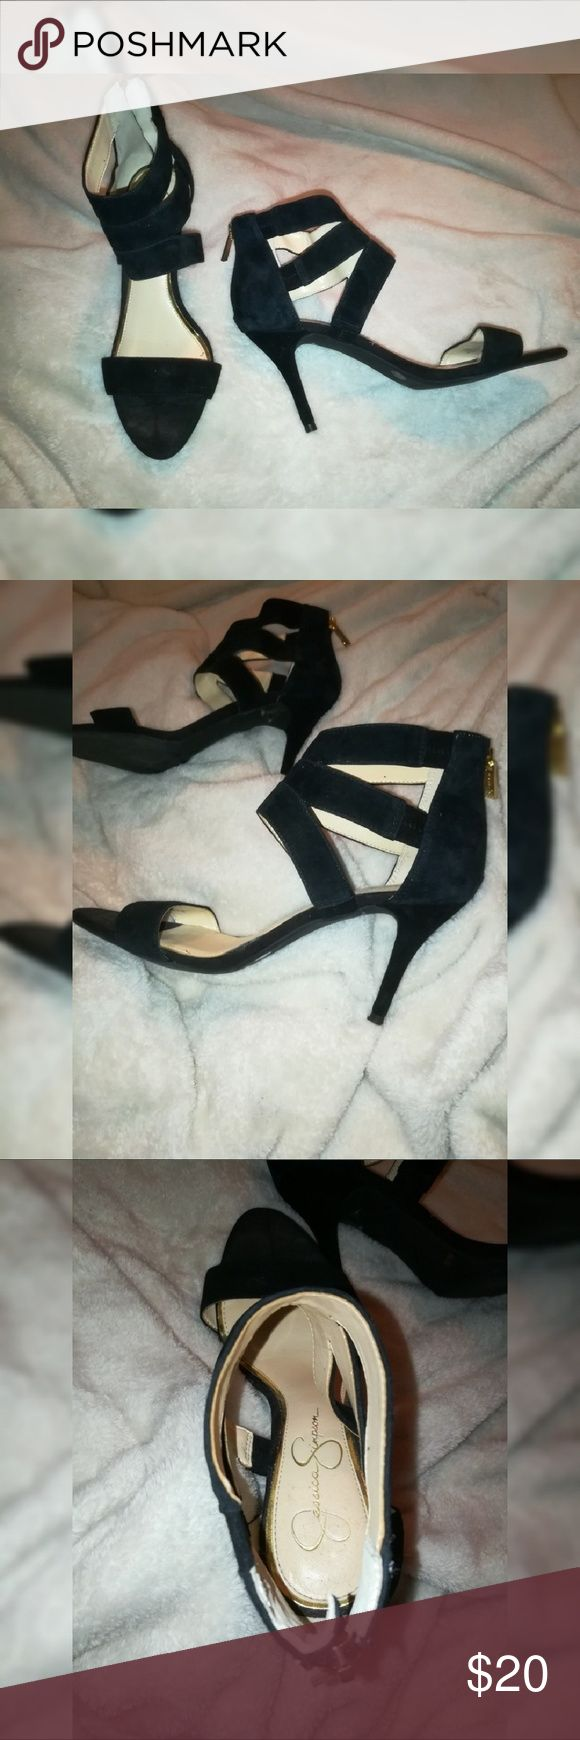 👠JESSICA SIMPSON BLACK SUEDE HEELS WITH ZIPPER Black suede heels with golden zipper back. Leather upper and man made sole material Jessica Simpson Shoes Heels